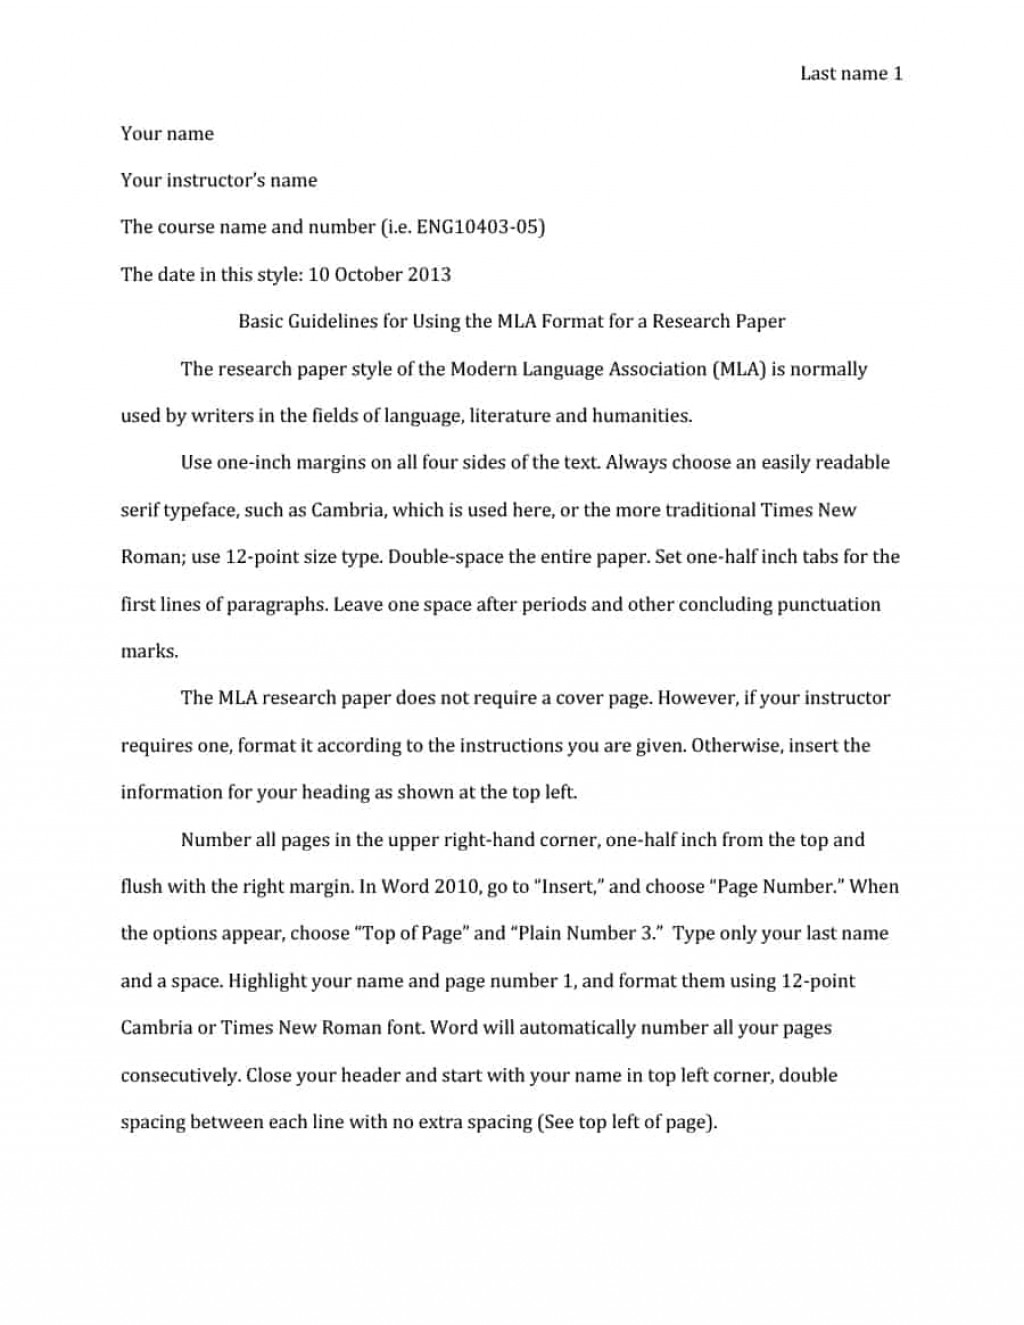 005 Research Paper In Mla Format Template Unbelievable Style Example With Title Page Outline Large